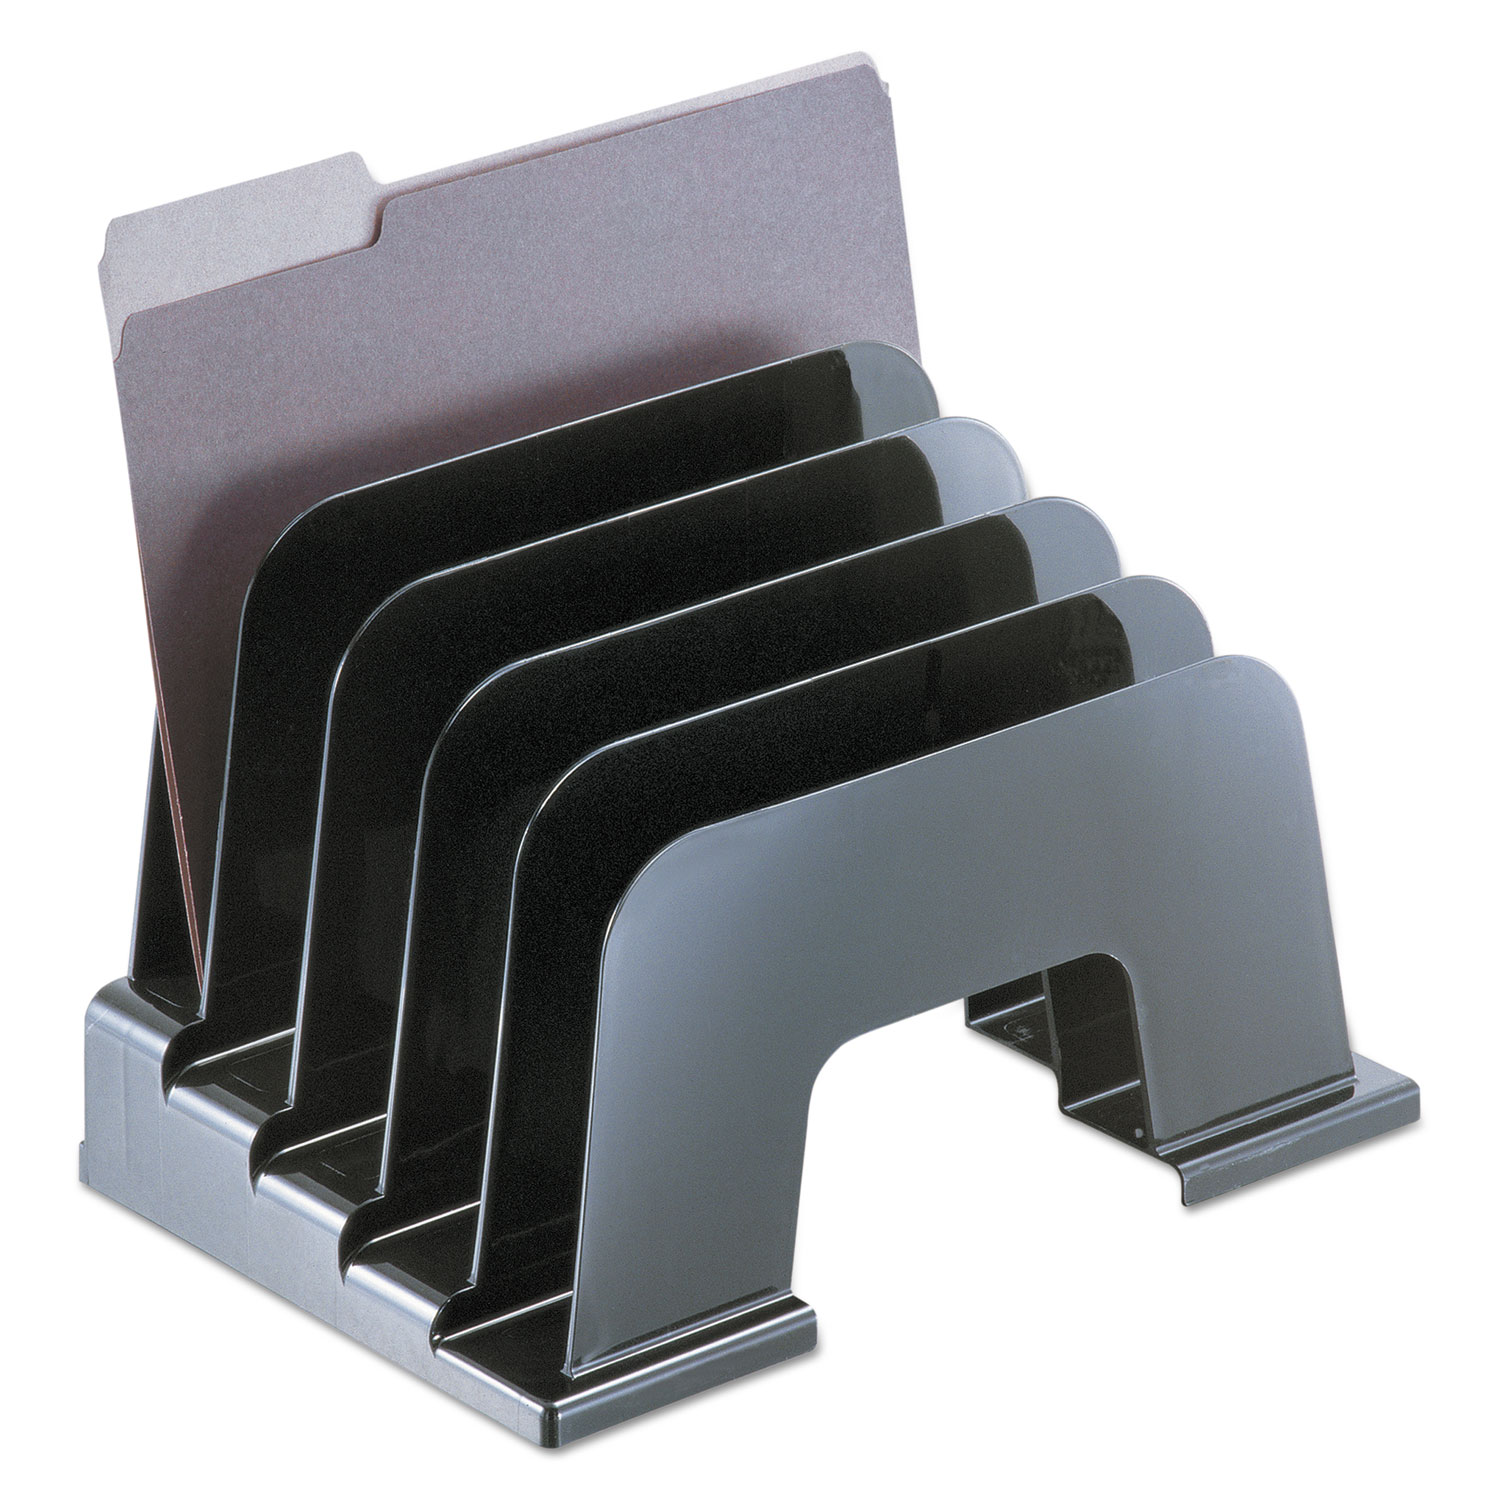 """Recycled Plastic Incline Sorter, 5 Sections, Letter Size Files, 13.25"""" x 9"""" x 9"""", Black"""